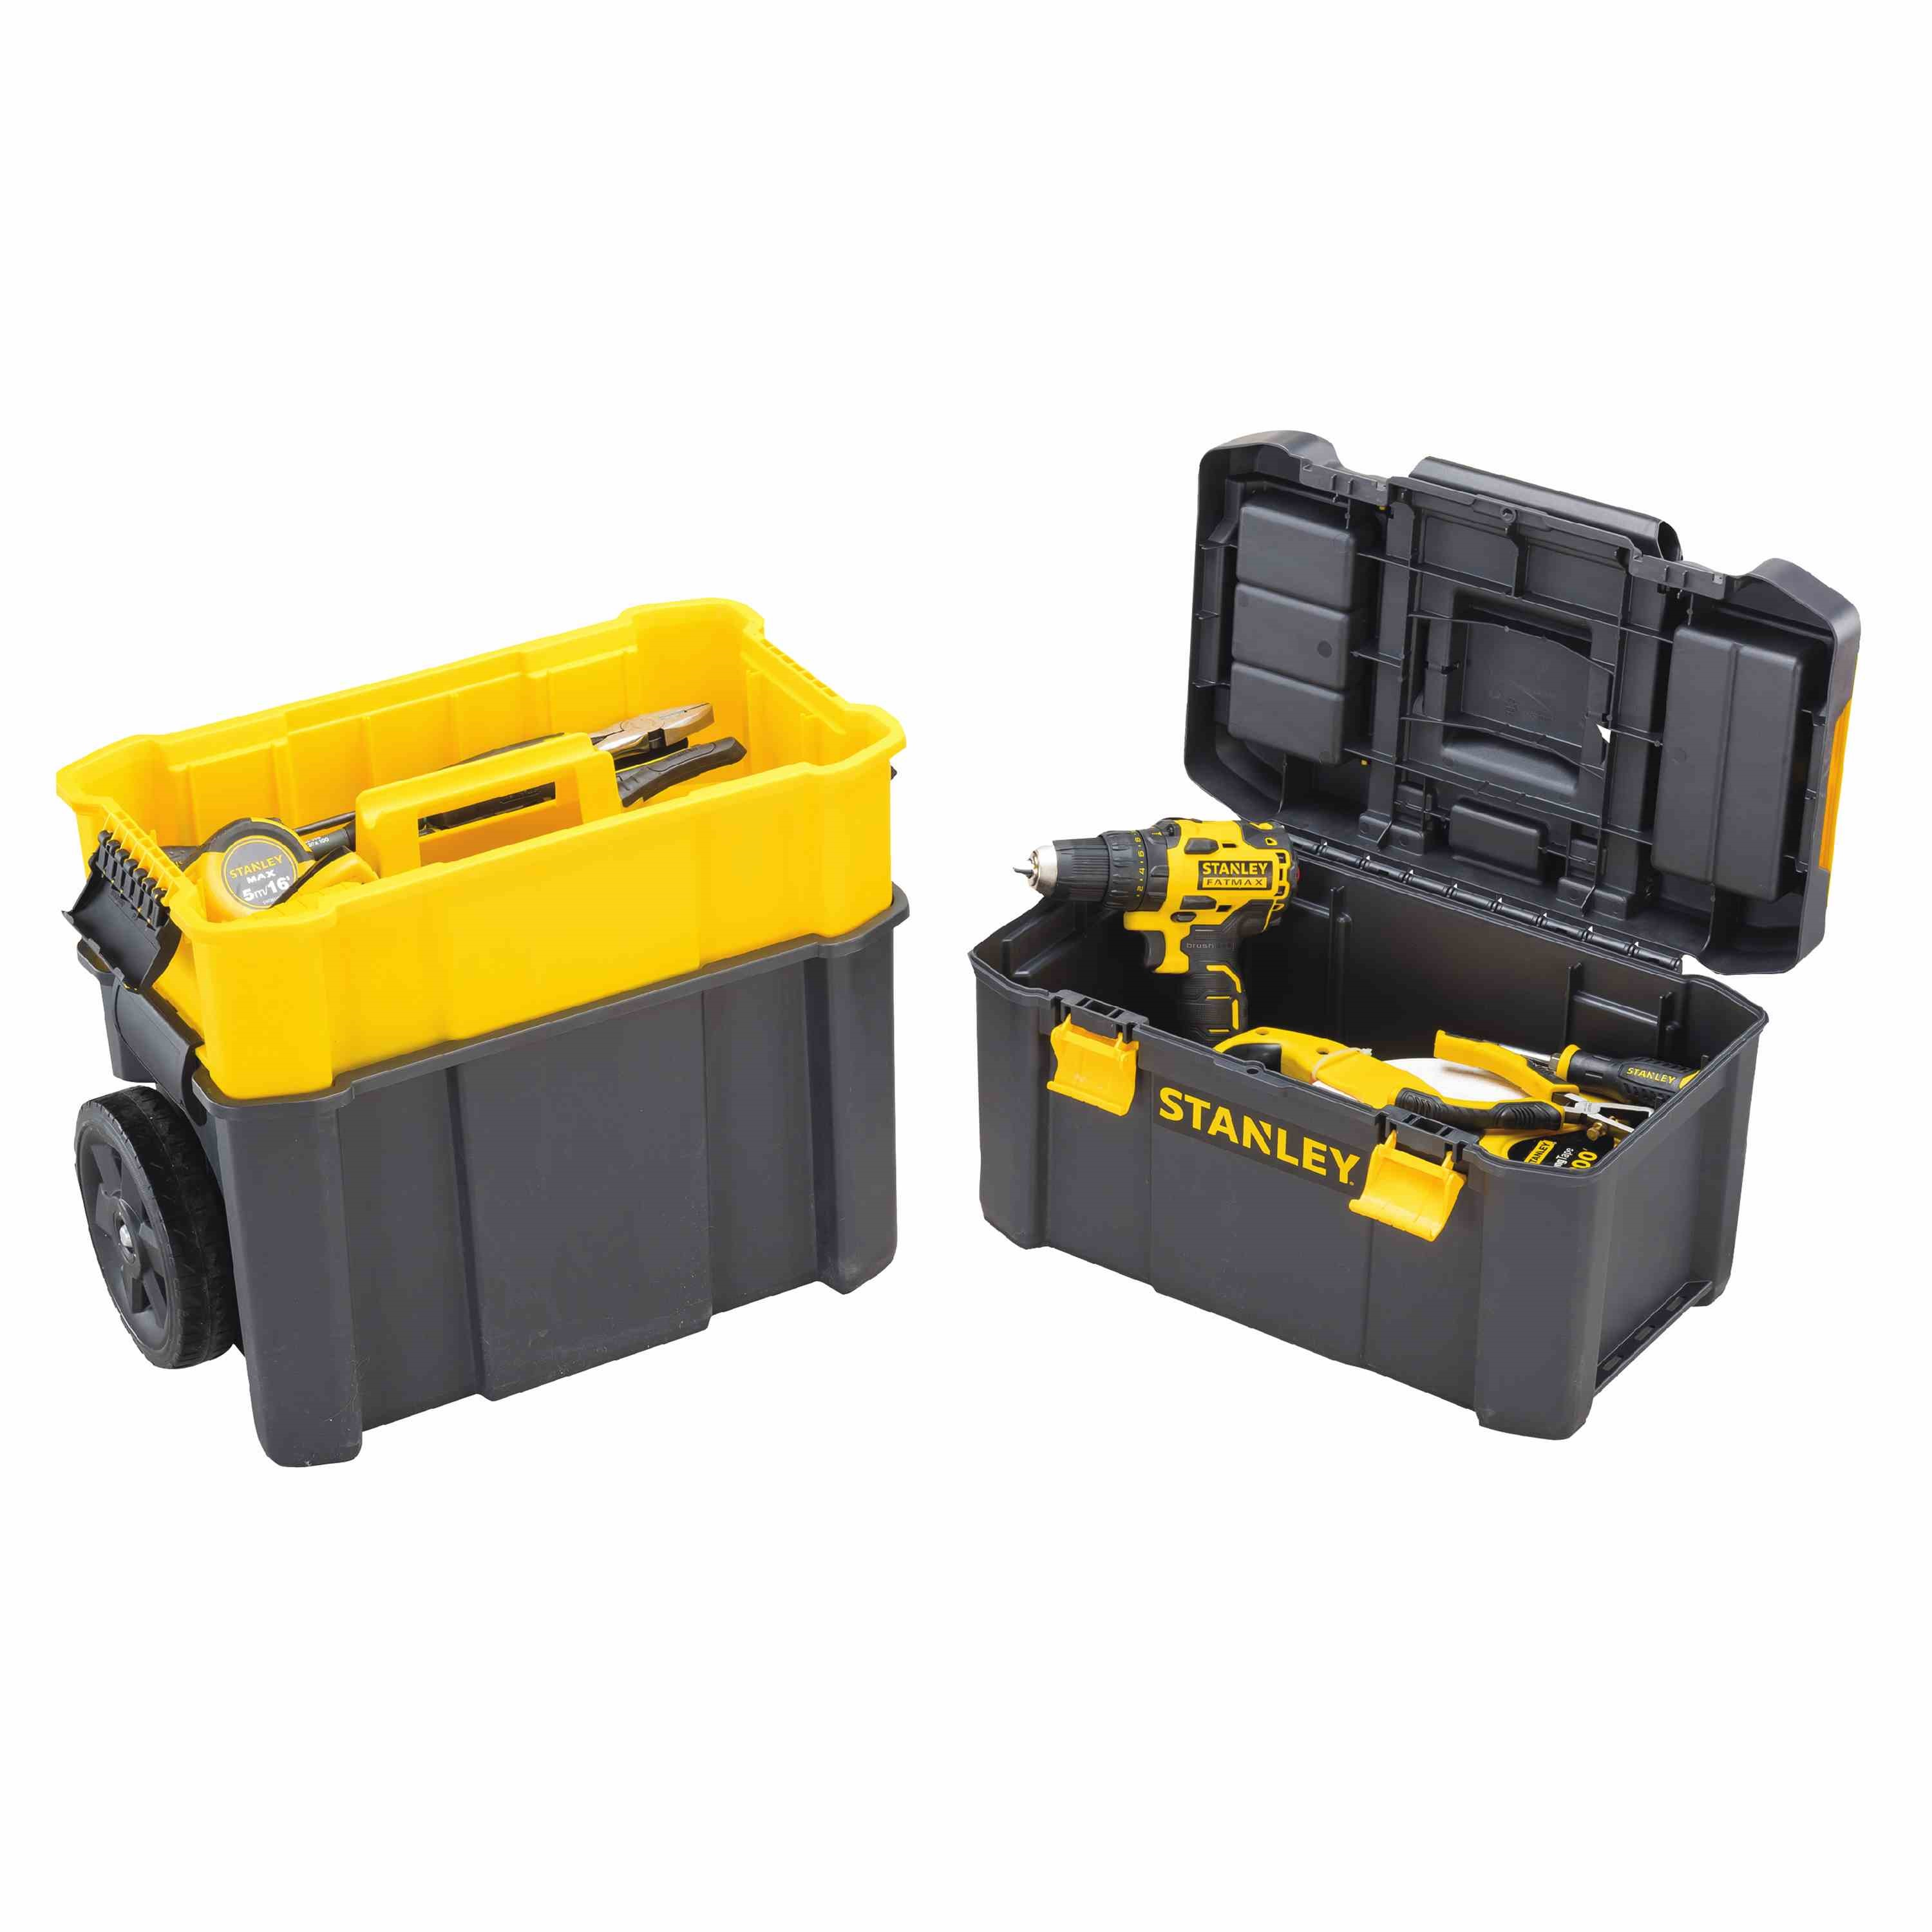 Stanley Tools - Essential Rolling Workshop - STST18631